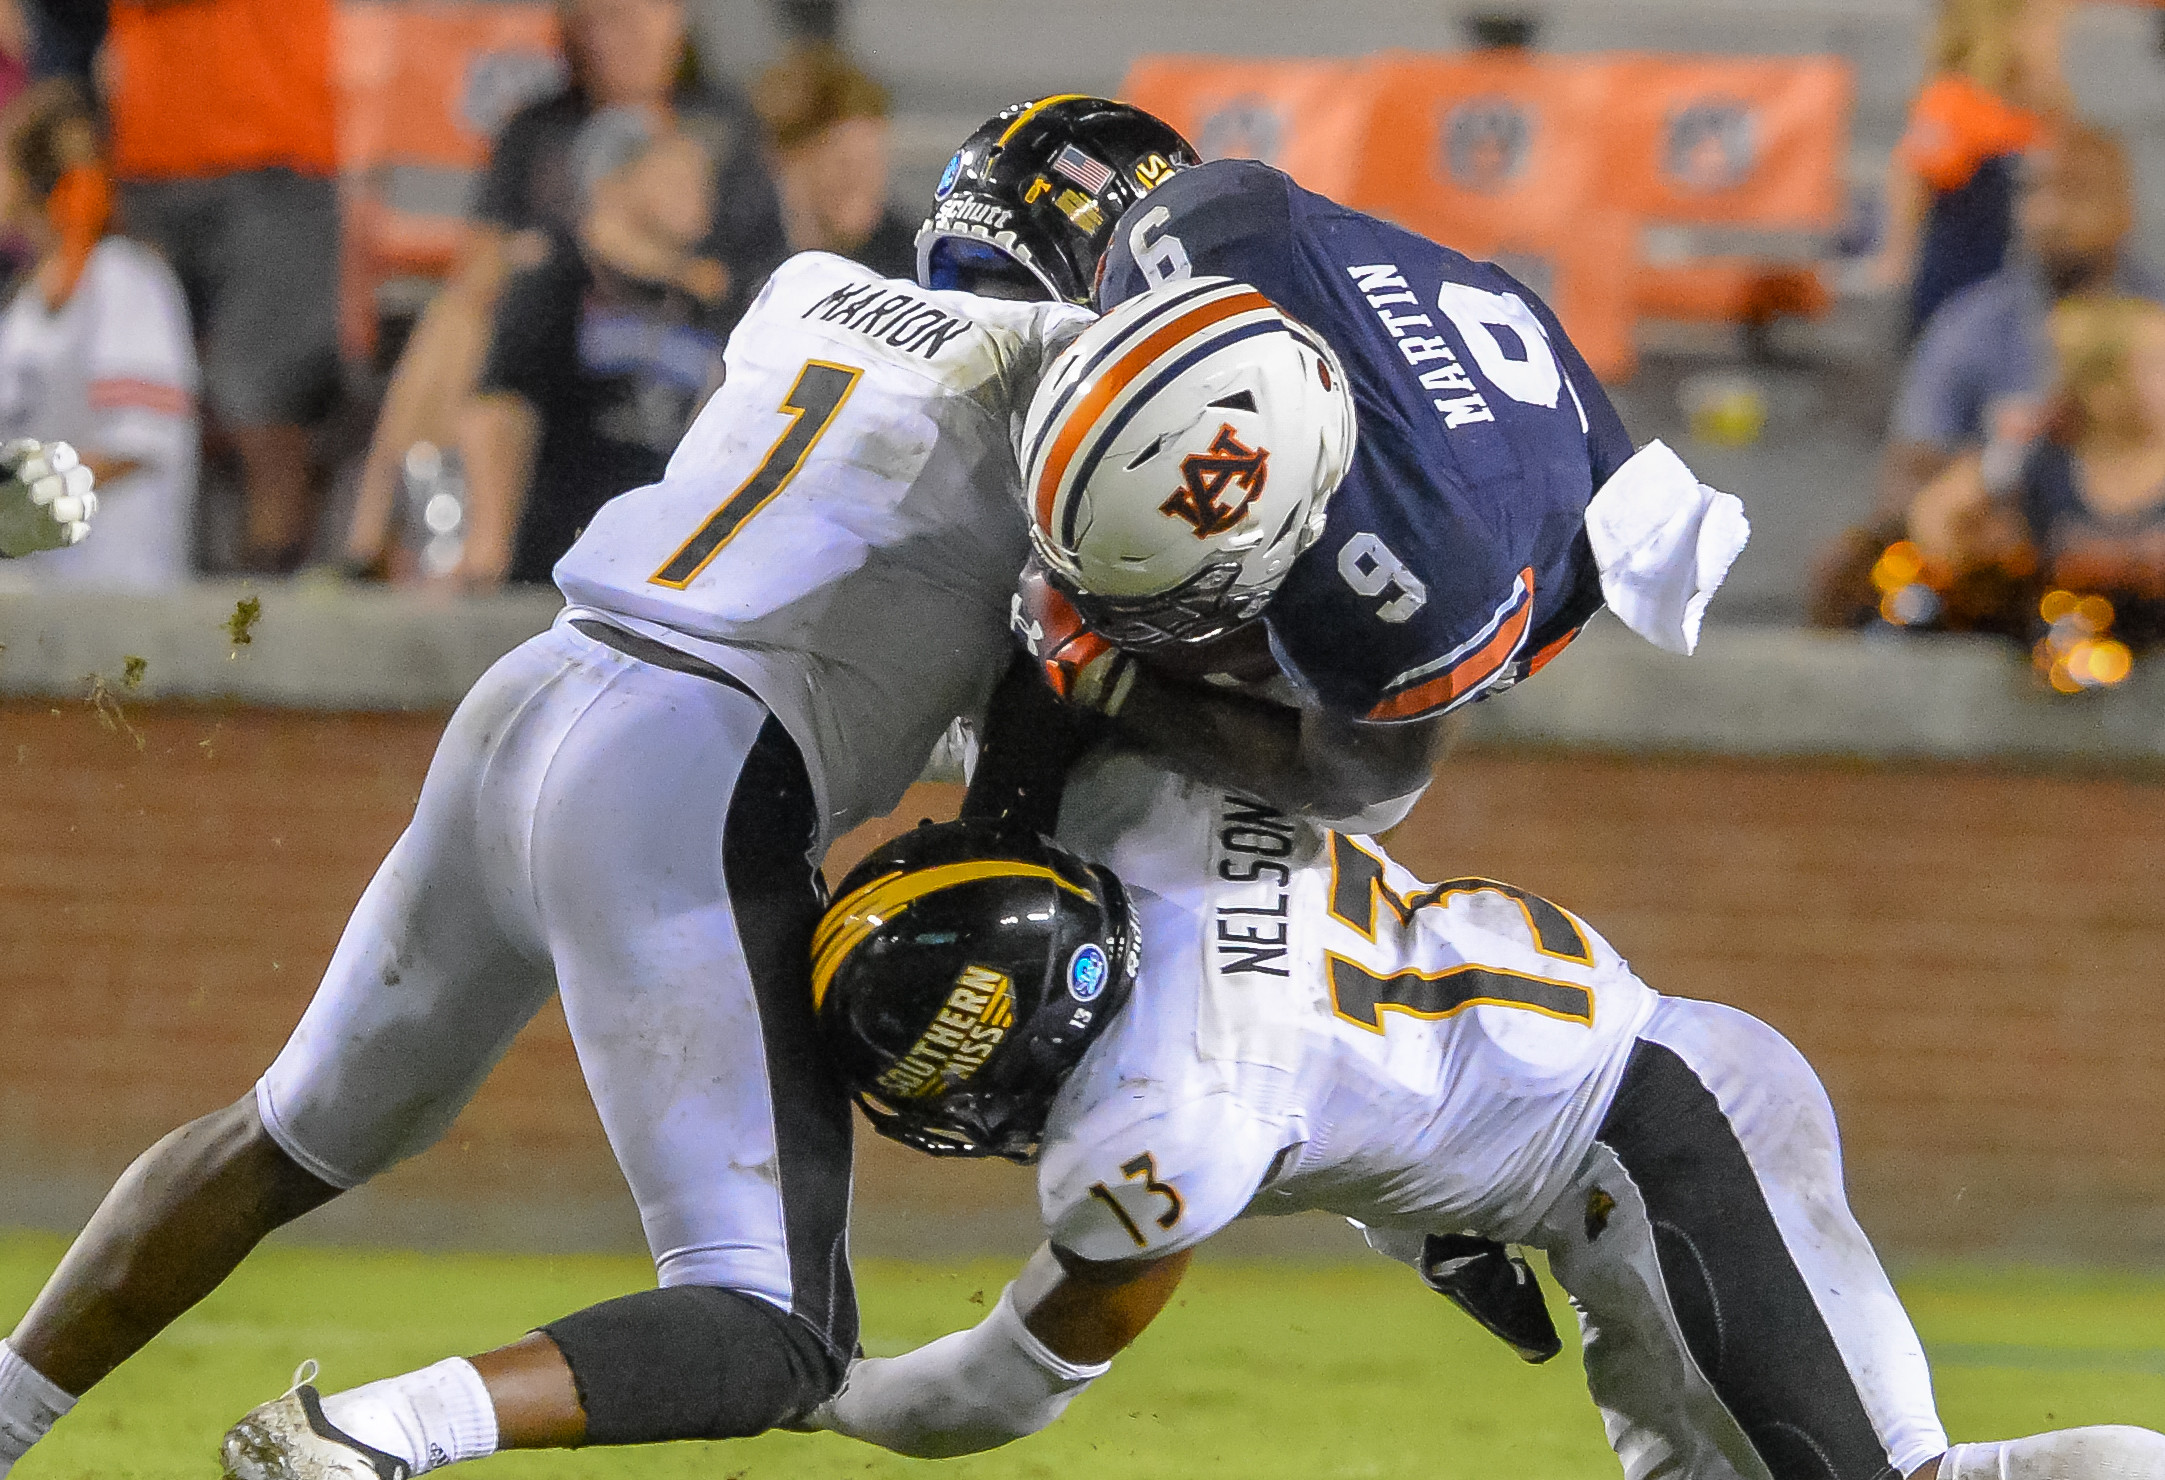 Southern Miss Golden Eagles defensive backs Xavier Marion (1) and Shannon Showers (15) combine to tackle Auburn Tigers running back Kam Martin (9) during the second half of Saturday's game, at Jordan Hare Stadium in Auburn AL. Daily Mountain Eagle -  Jeff Johnsey